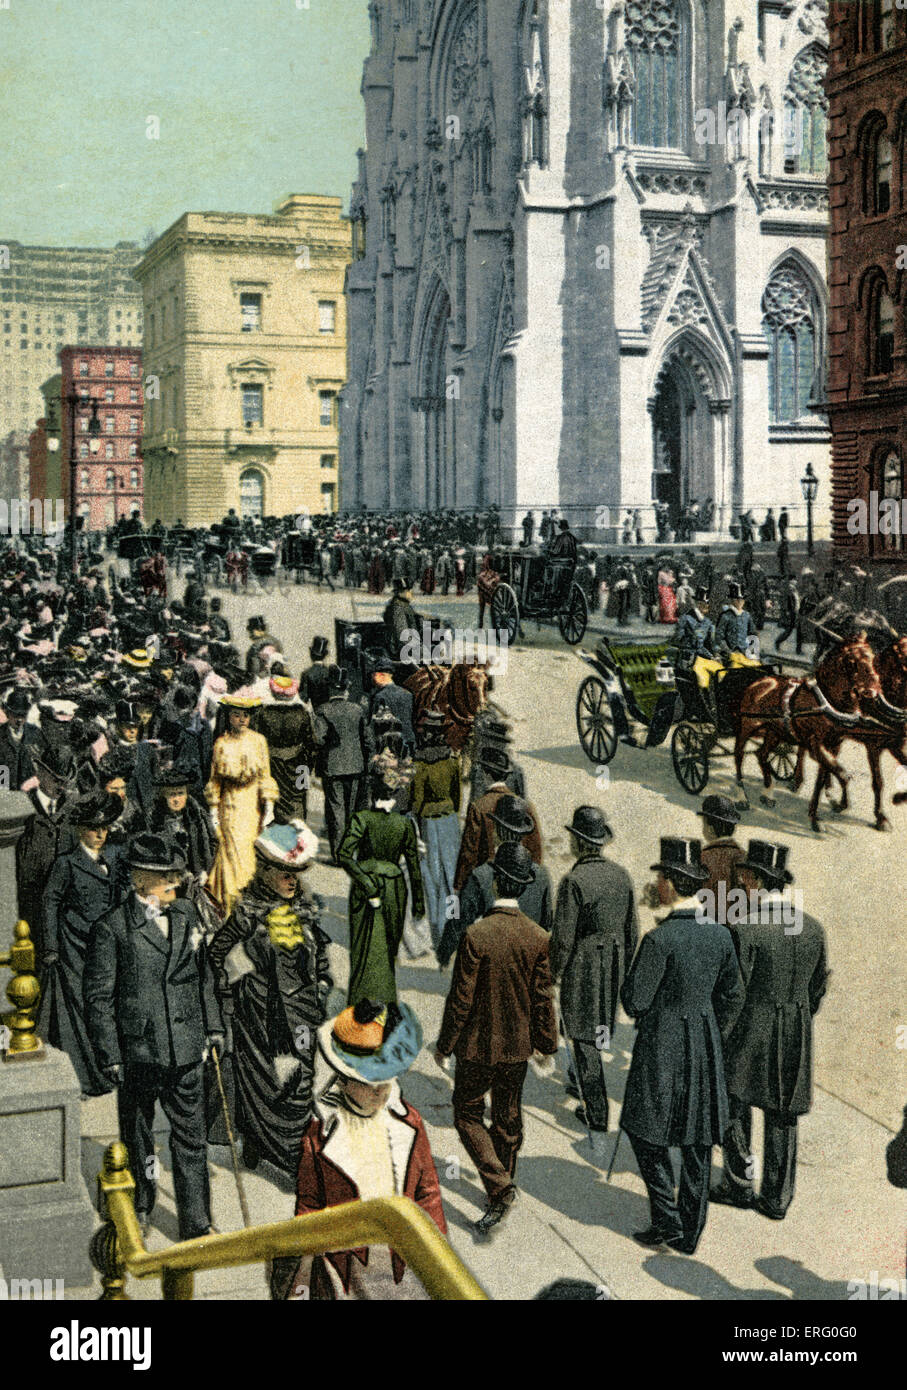 Fifth Avenue, New York, 1890s, near St Patrick's Cathedral- with passers-by strolling down the side walks. Stock Photo